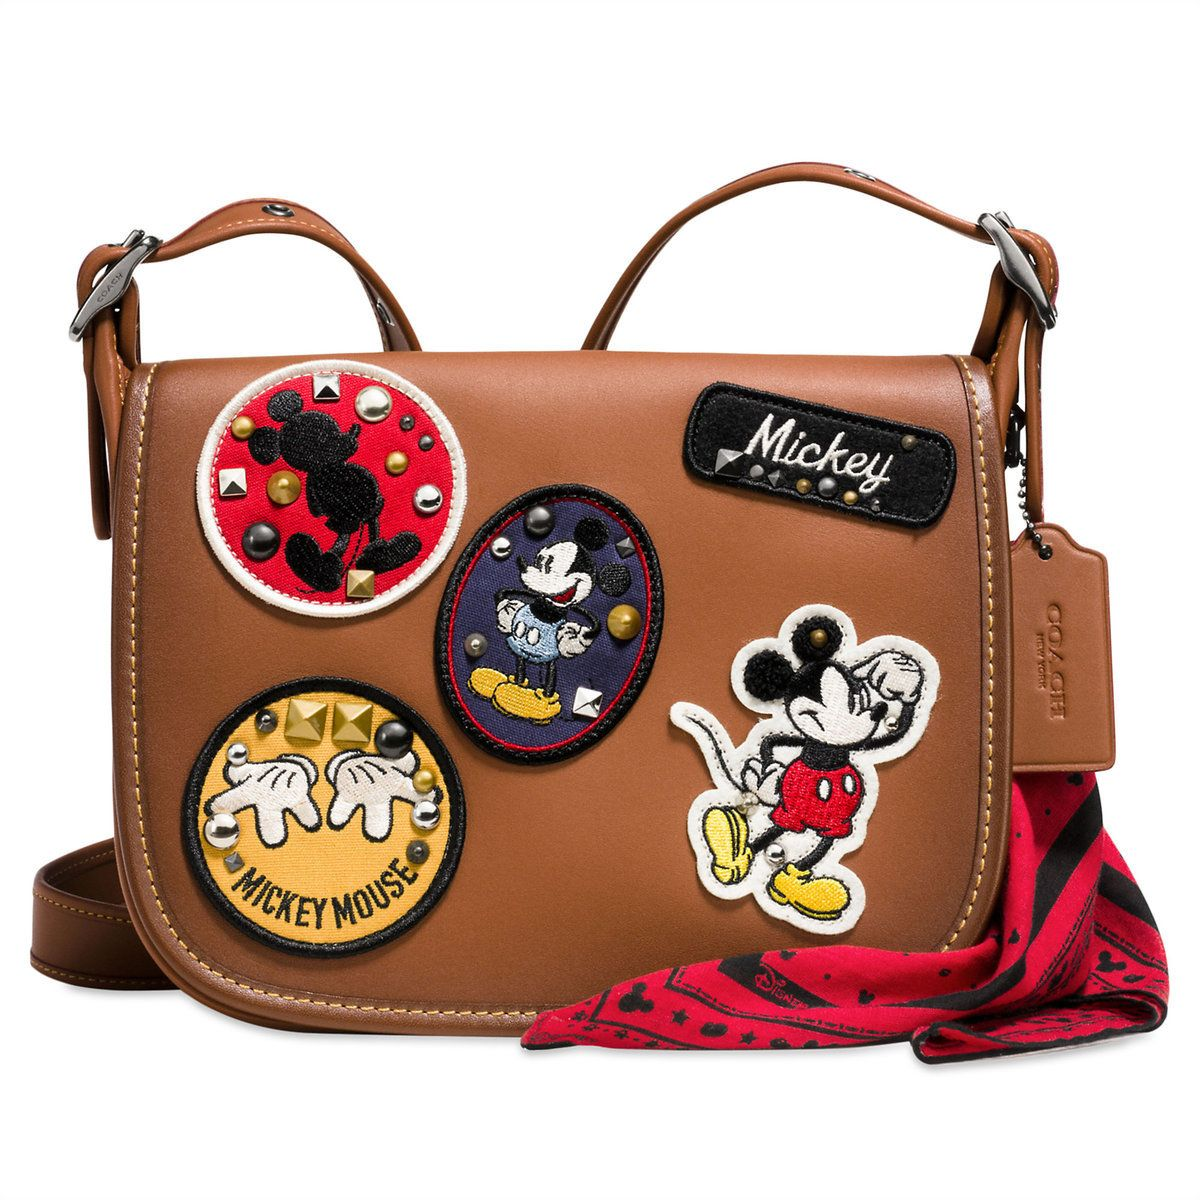 5a67751469bec Mickey Mouse Patch Patricia Leather Saddle Bag by COACH | Disney ...